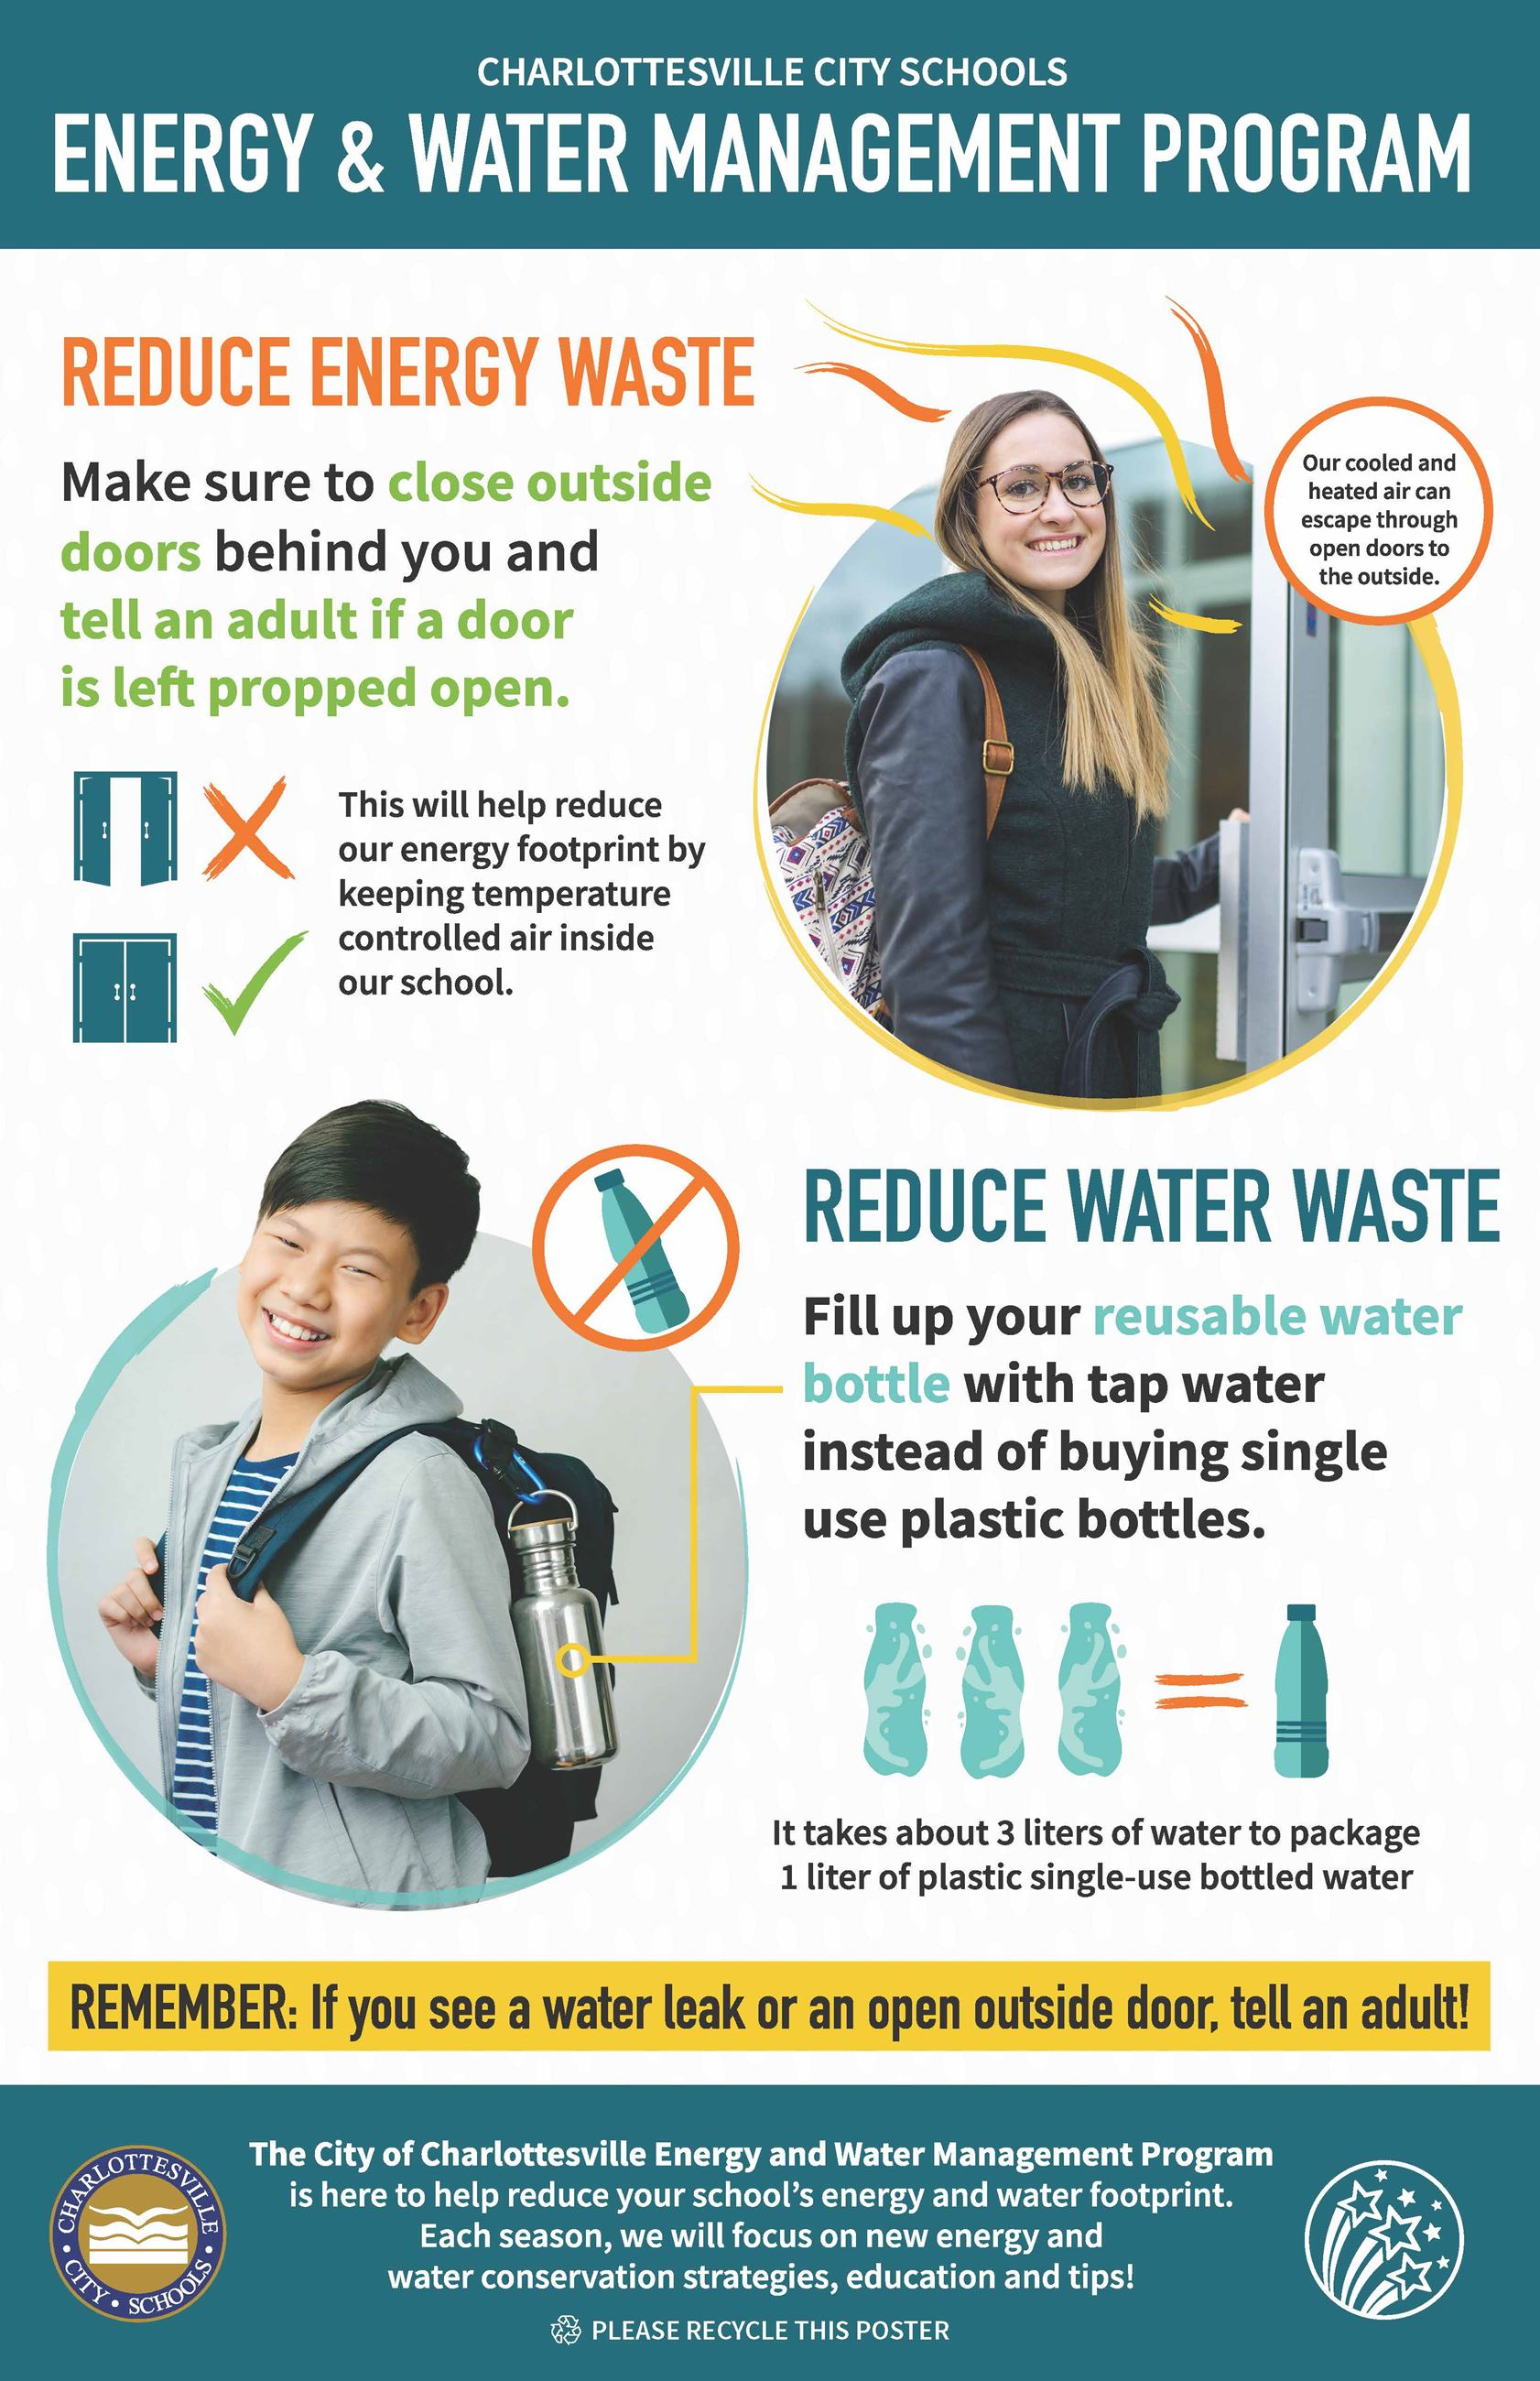 2020 Spring Energy and Water Management Program School Poster